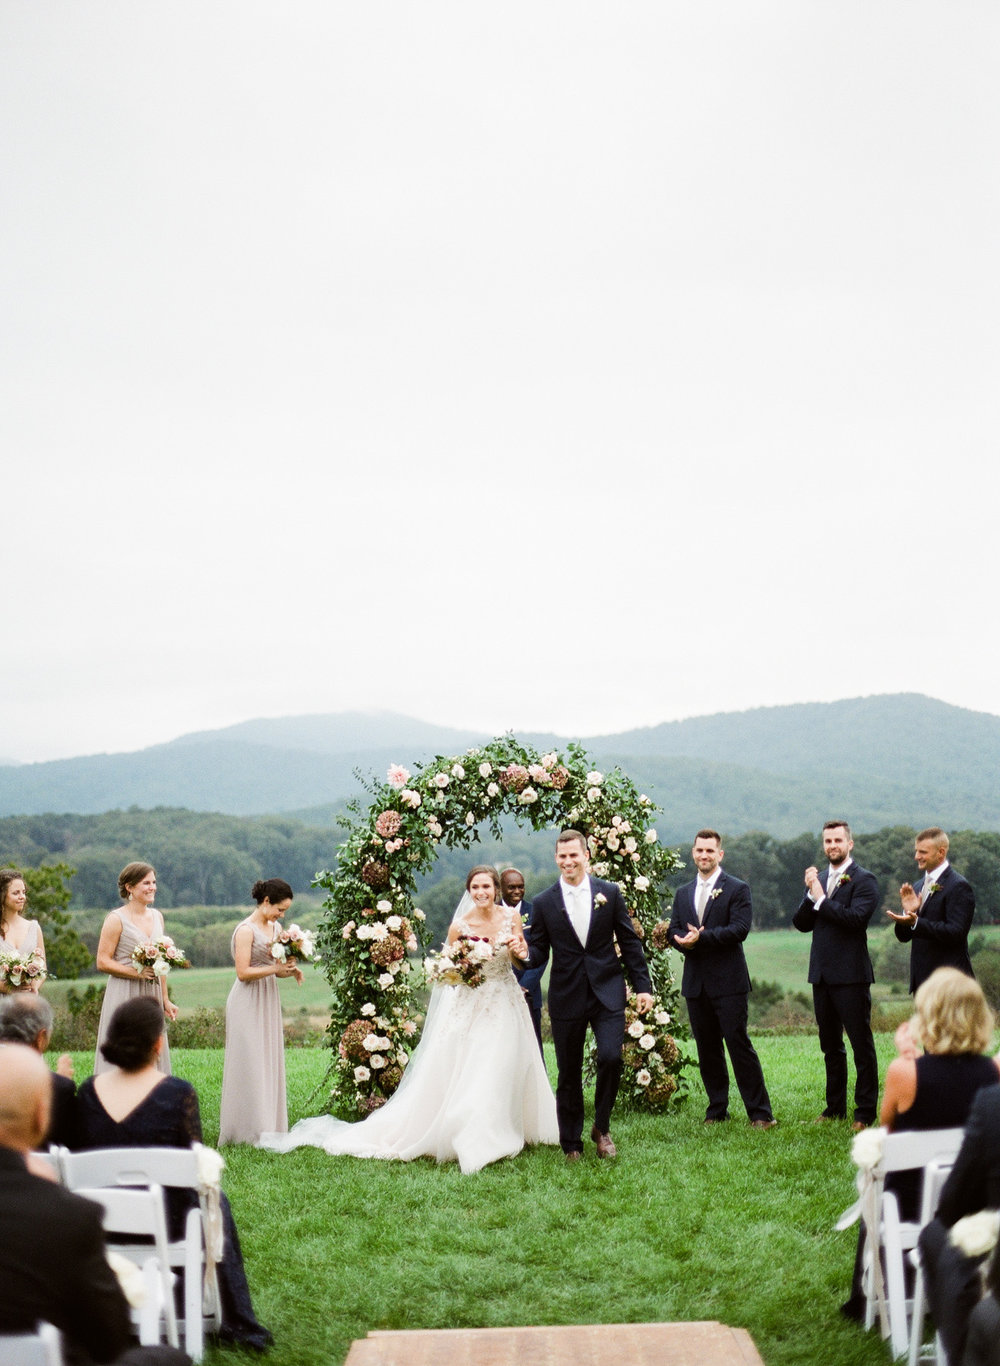 Pippin-Hill-Farm-and-Vinyards-Wedding-Film-Photography-32.jpg